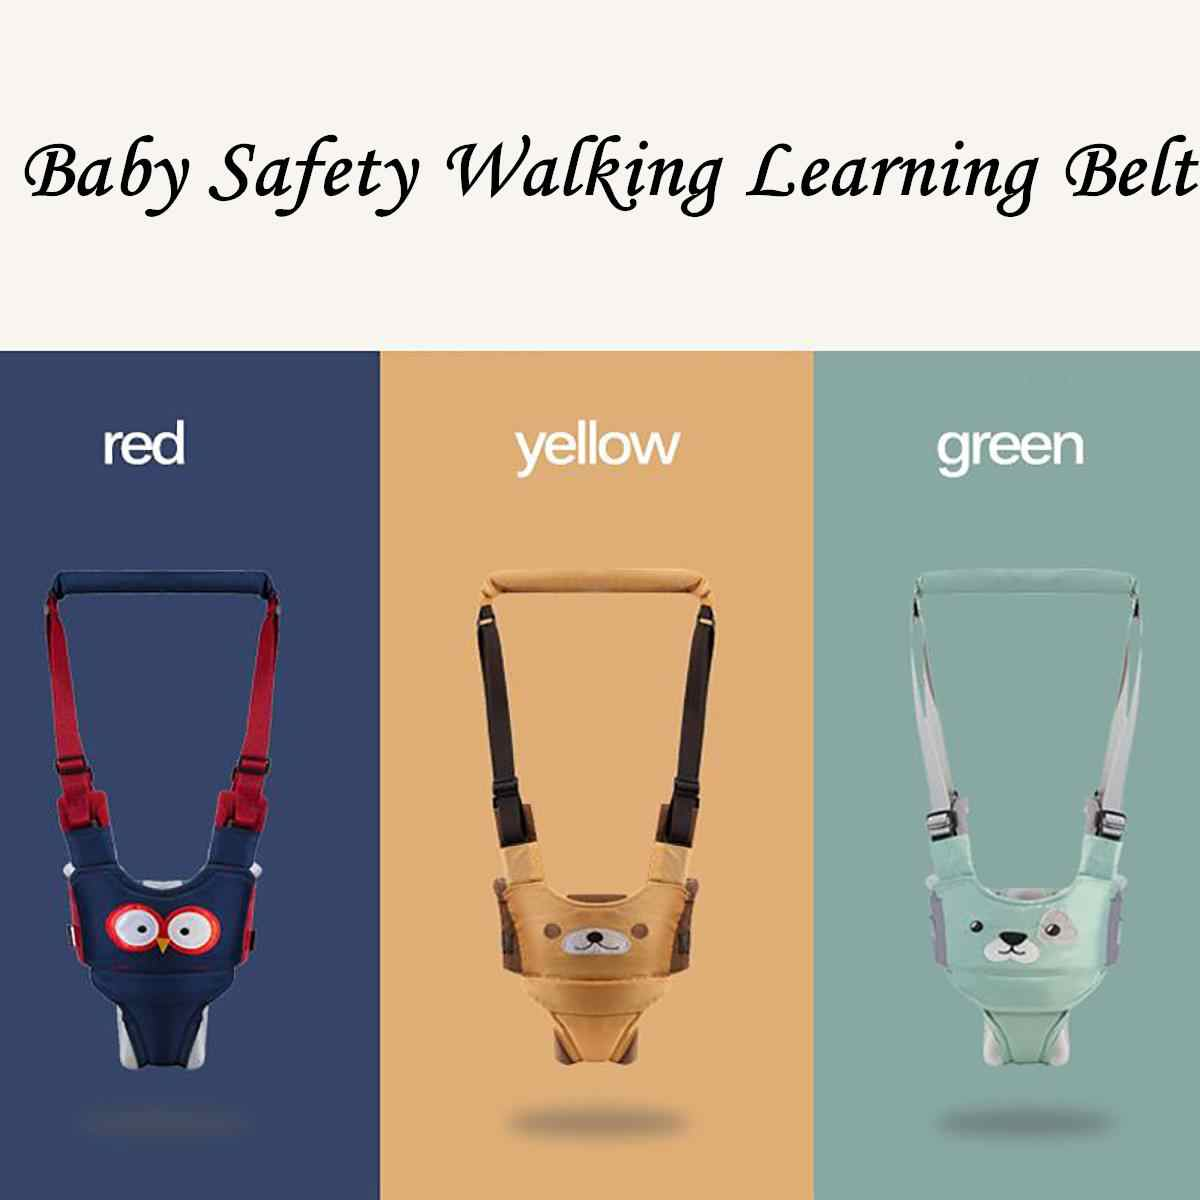 3 types Cotton Toddler Baby Harness Safety Walking Assistant Learning Walk Safety Belt Harness Walker Wings Kid Boy Girl Leashes